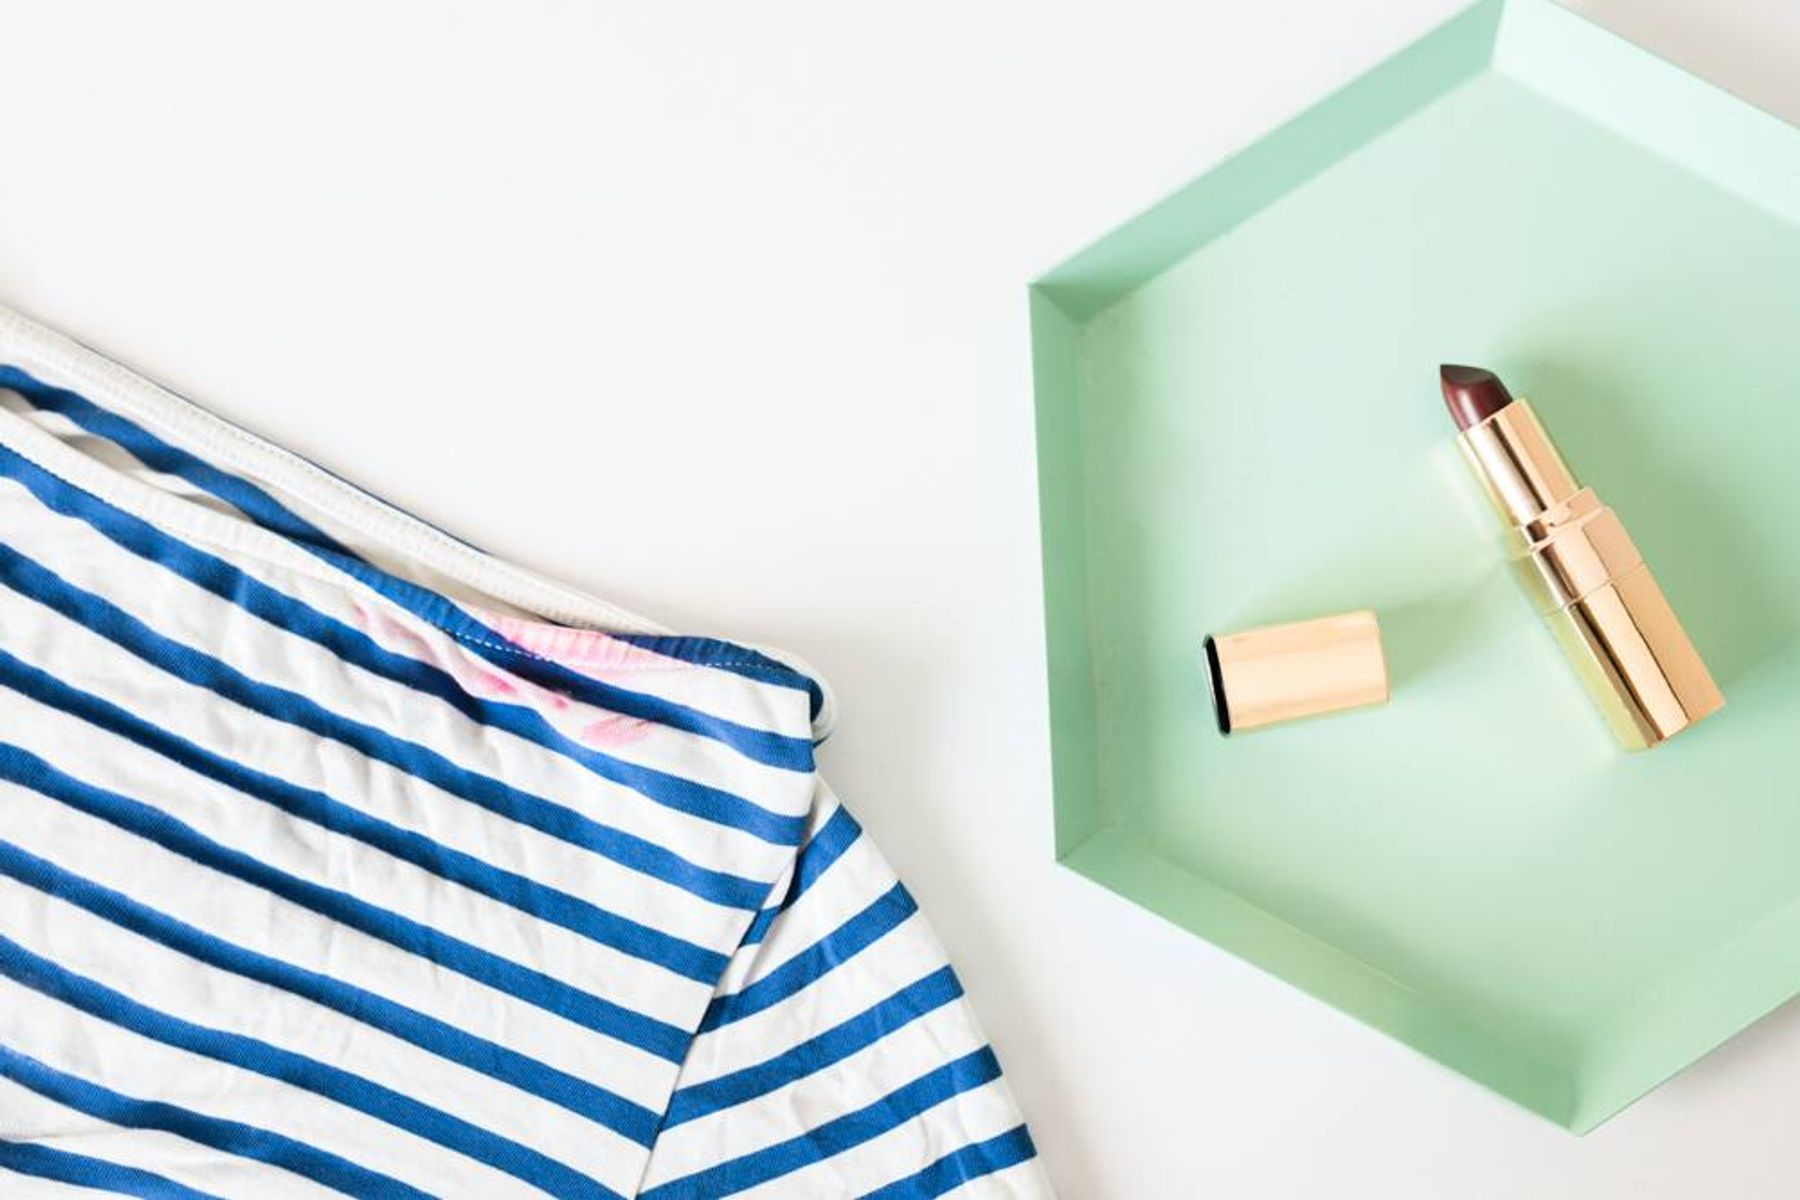 Striped top with a lipstick stain beside a tray containing an open tube of lipstick.